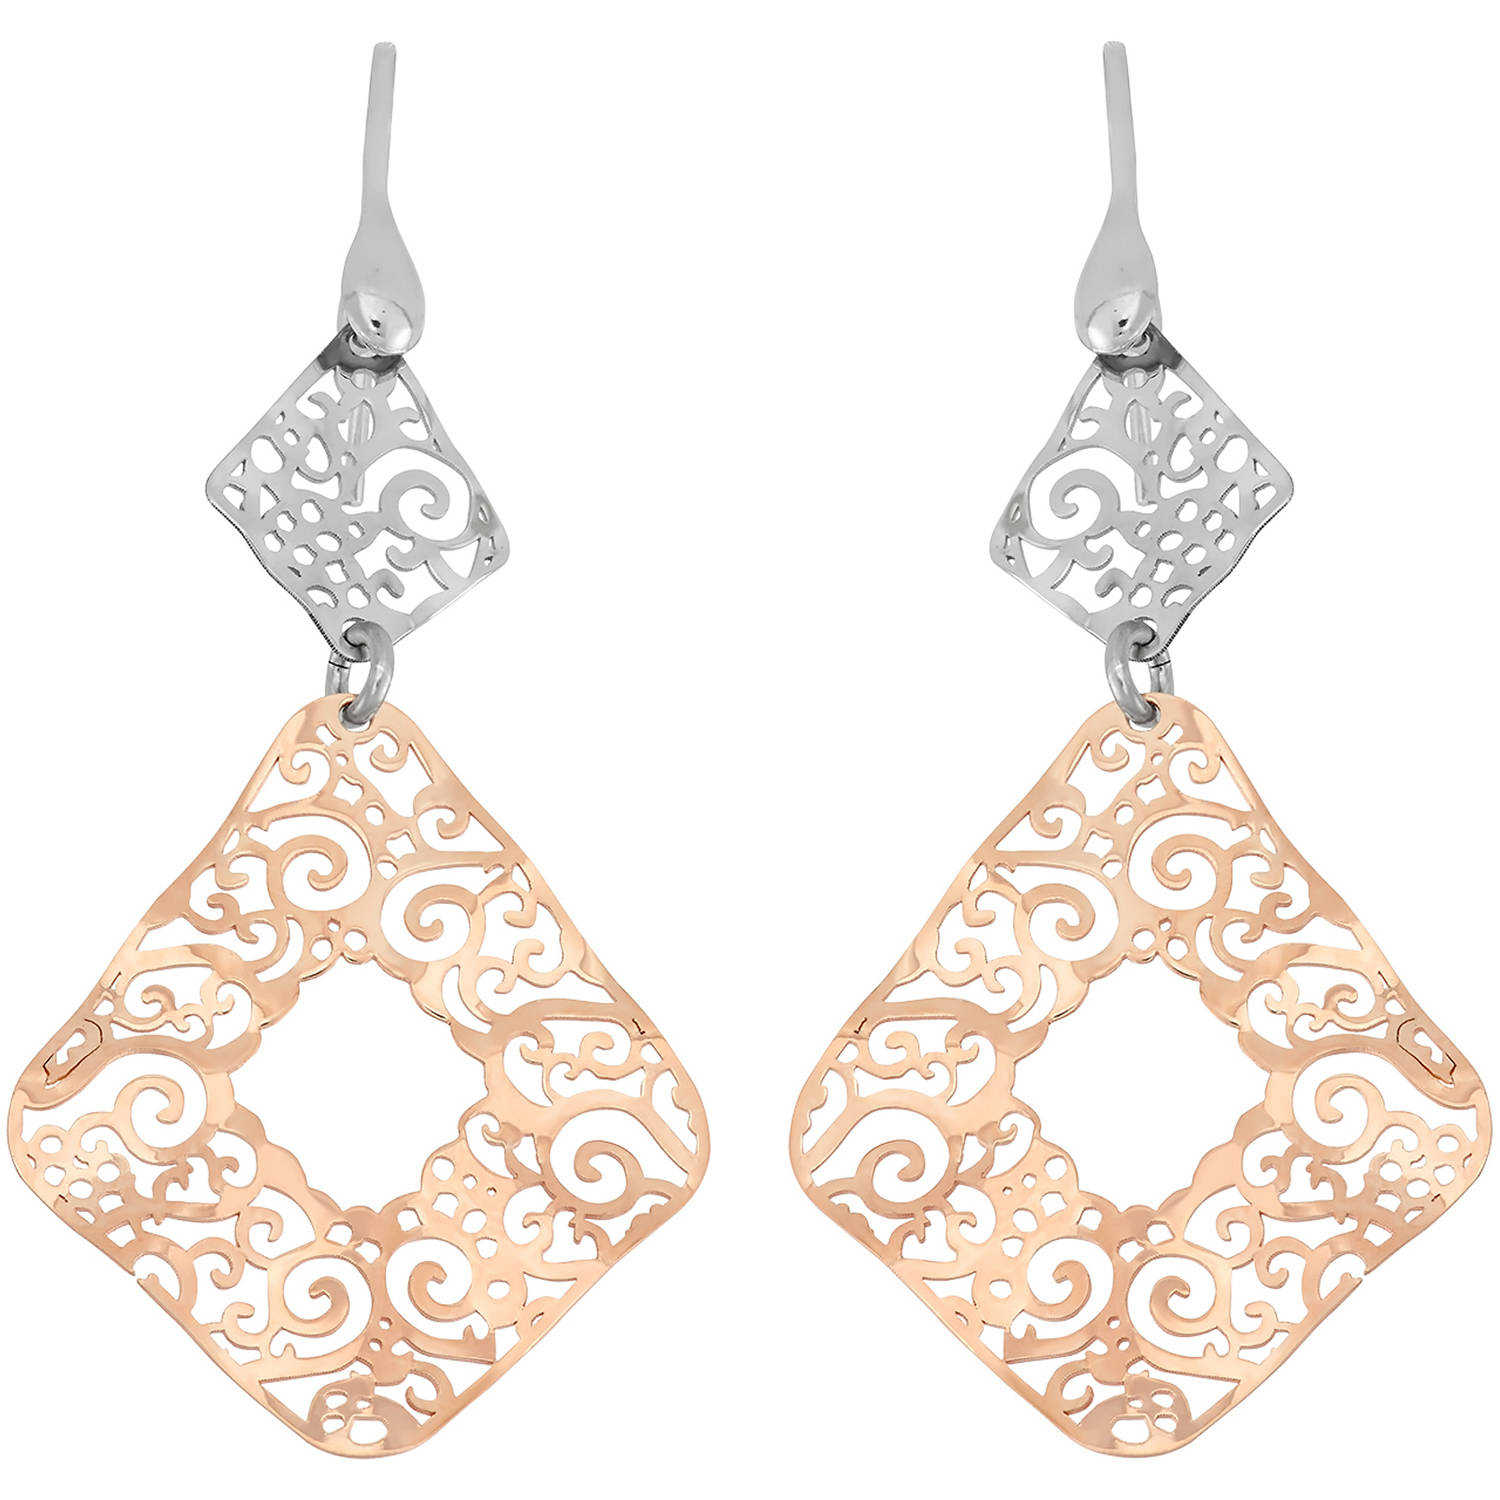 Giuliano Mameli 14kt Rose Gold- and Rhodium-Plated Sterling Silver Diamond-Shape Cut-Out Dangle Earrings